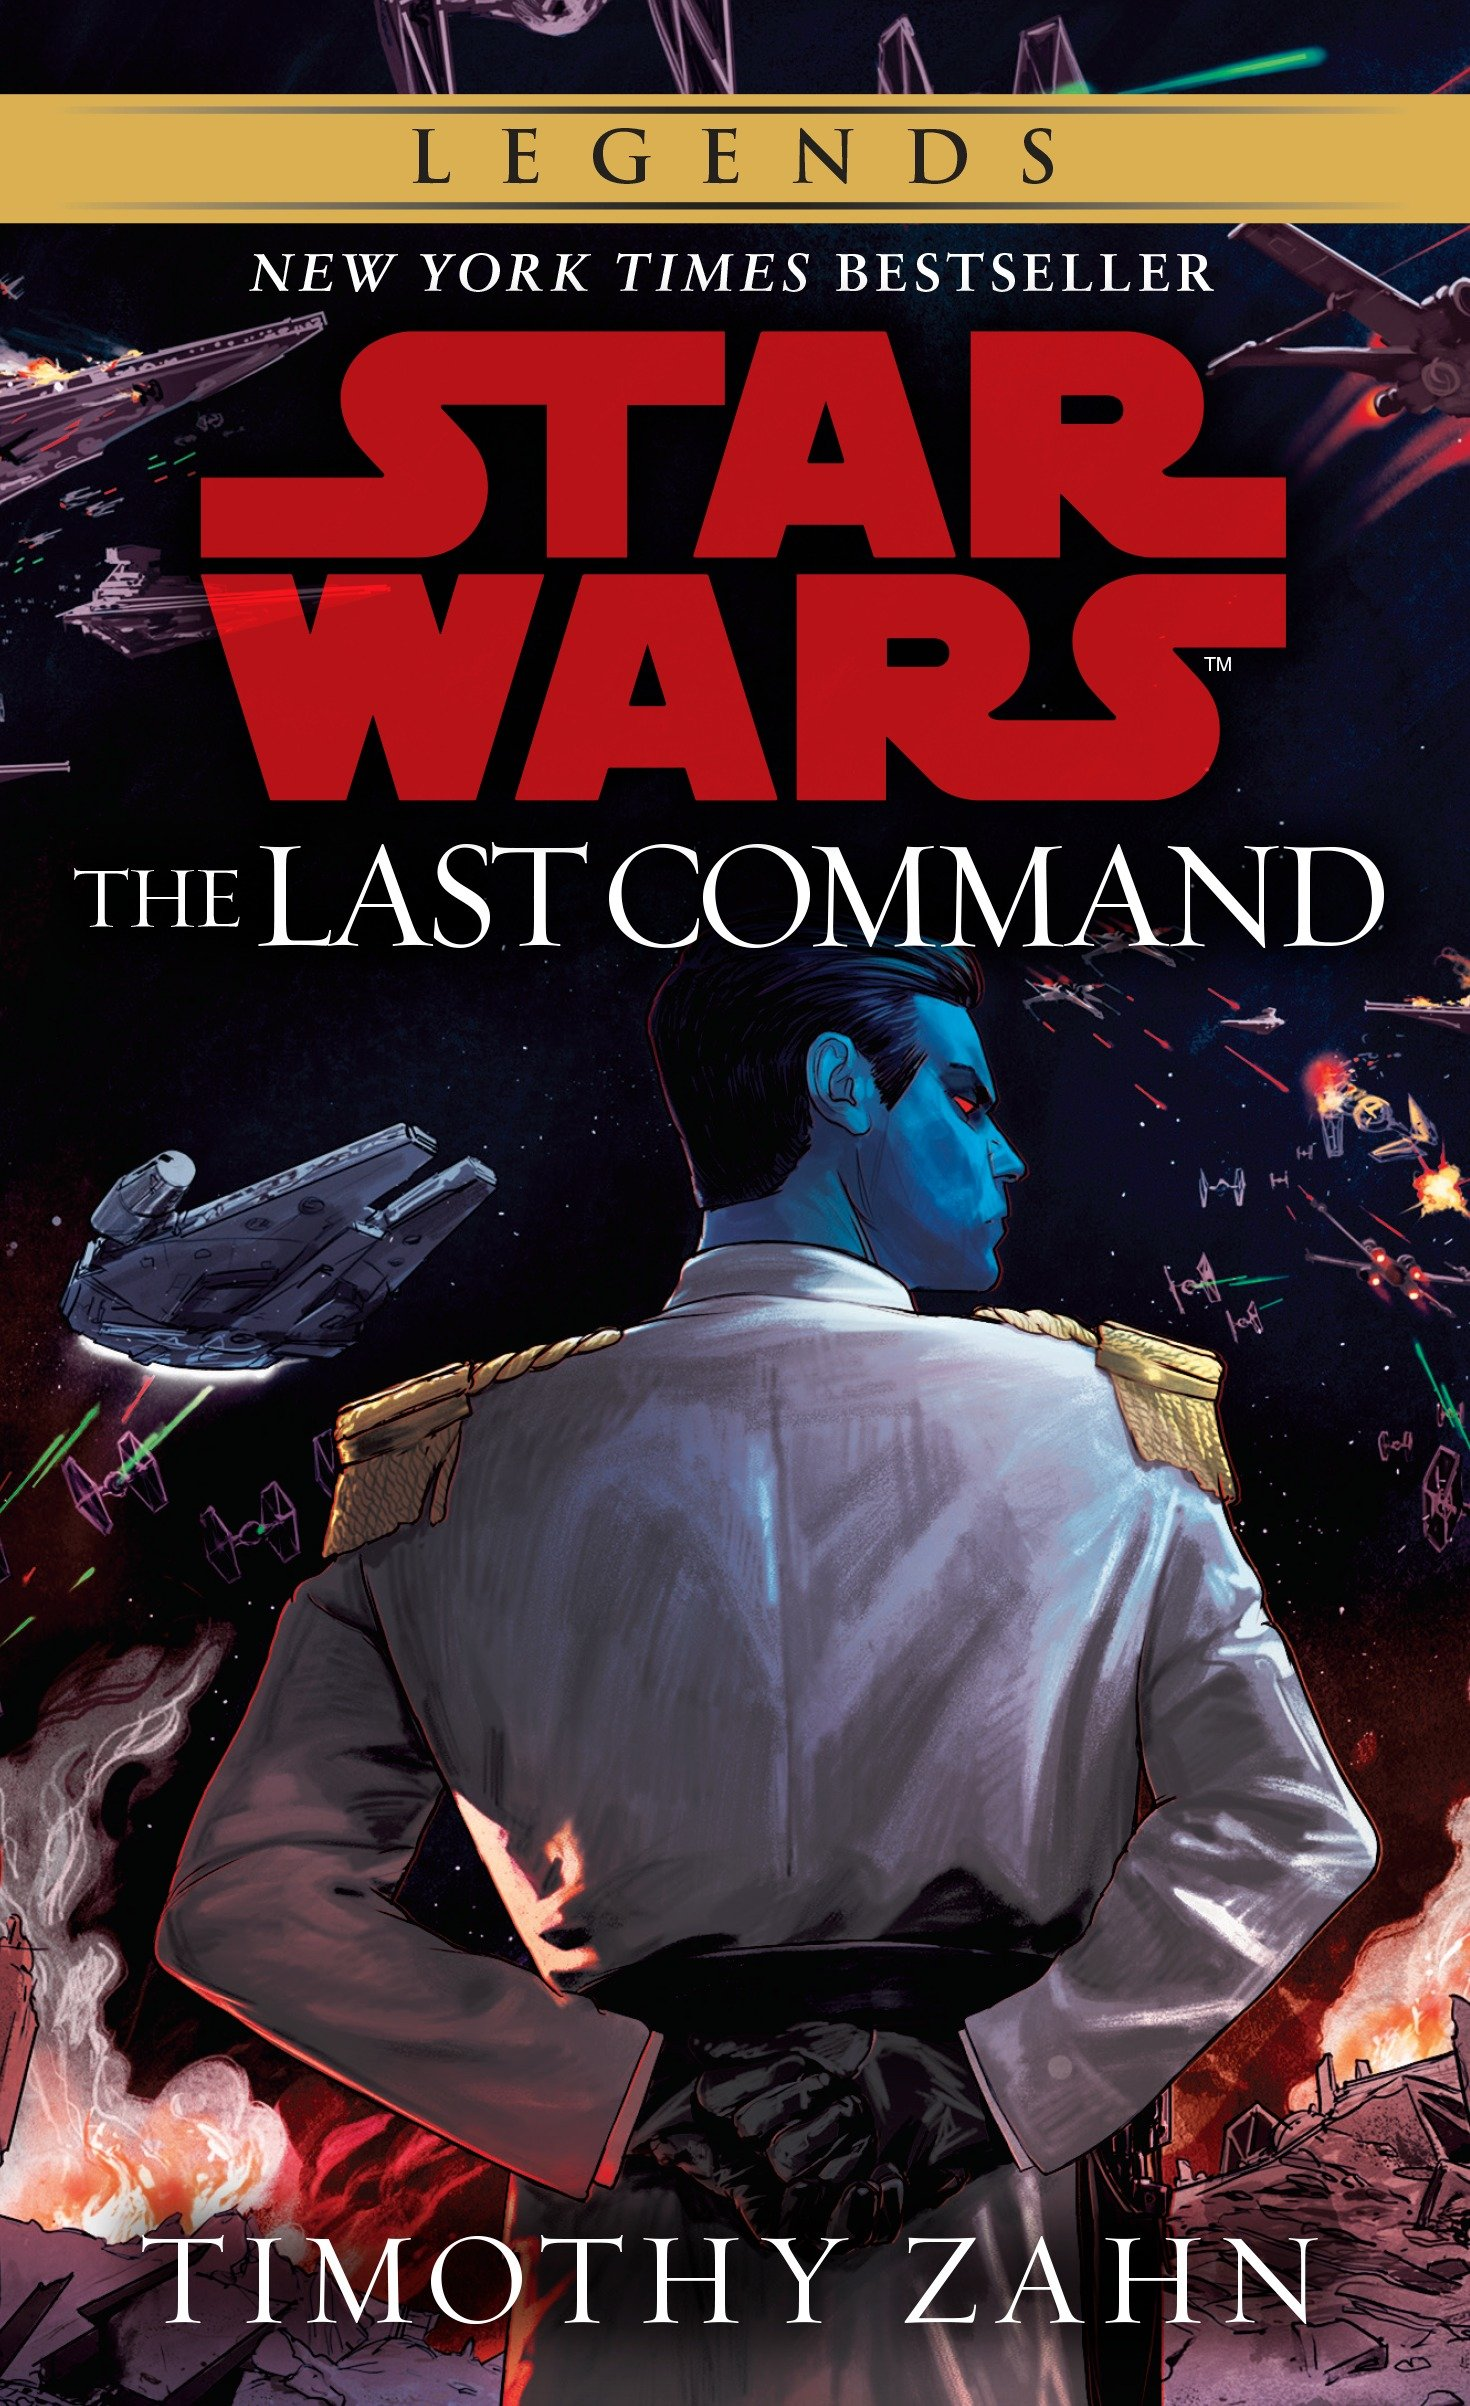 The Last Command (27.09.2016)